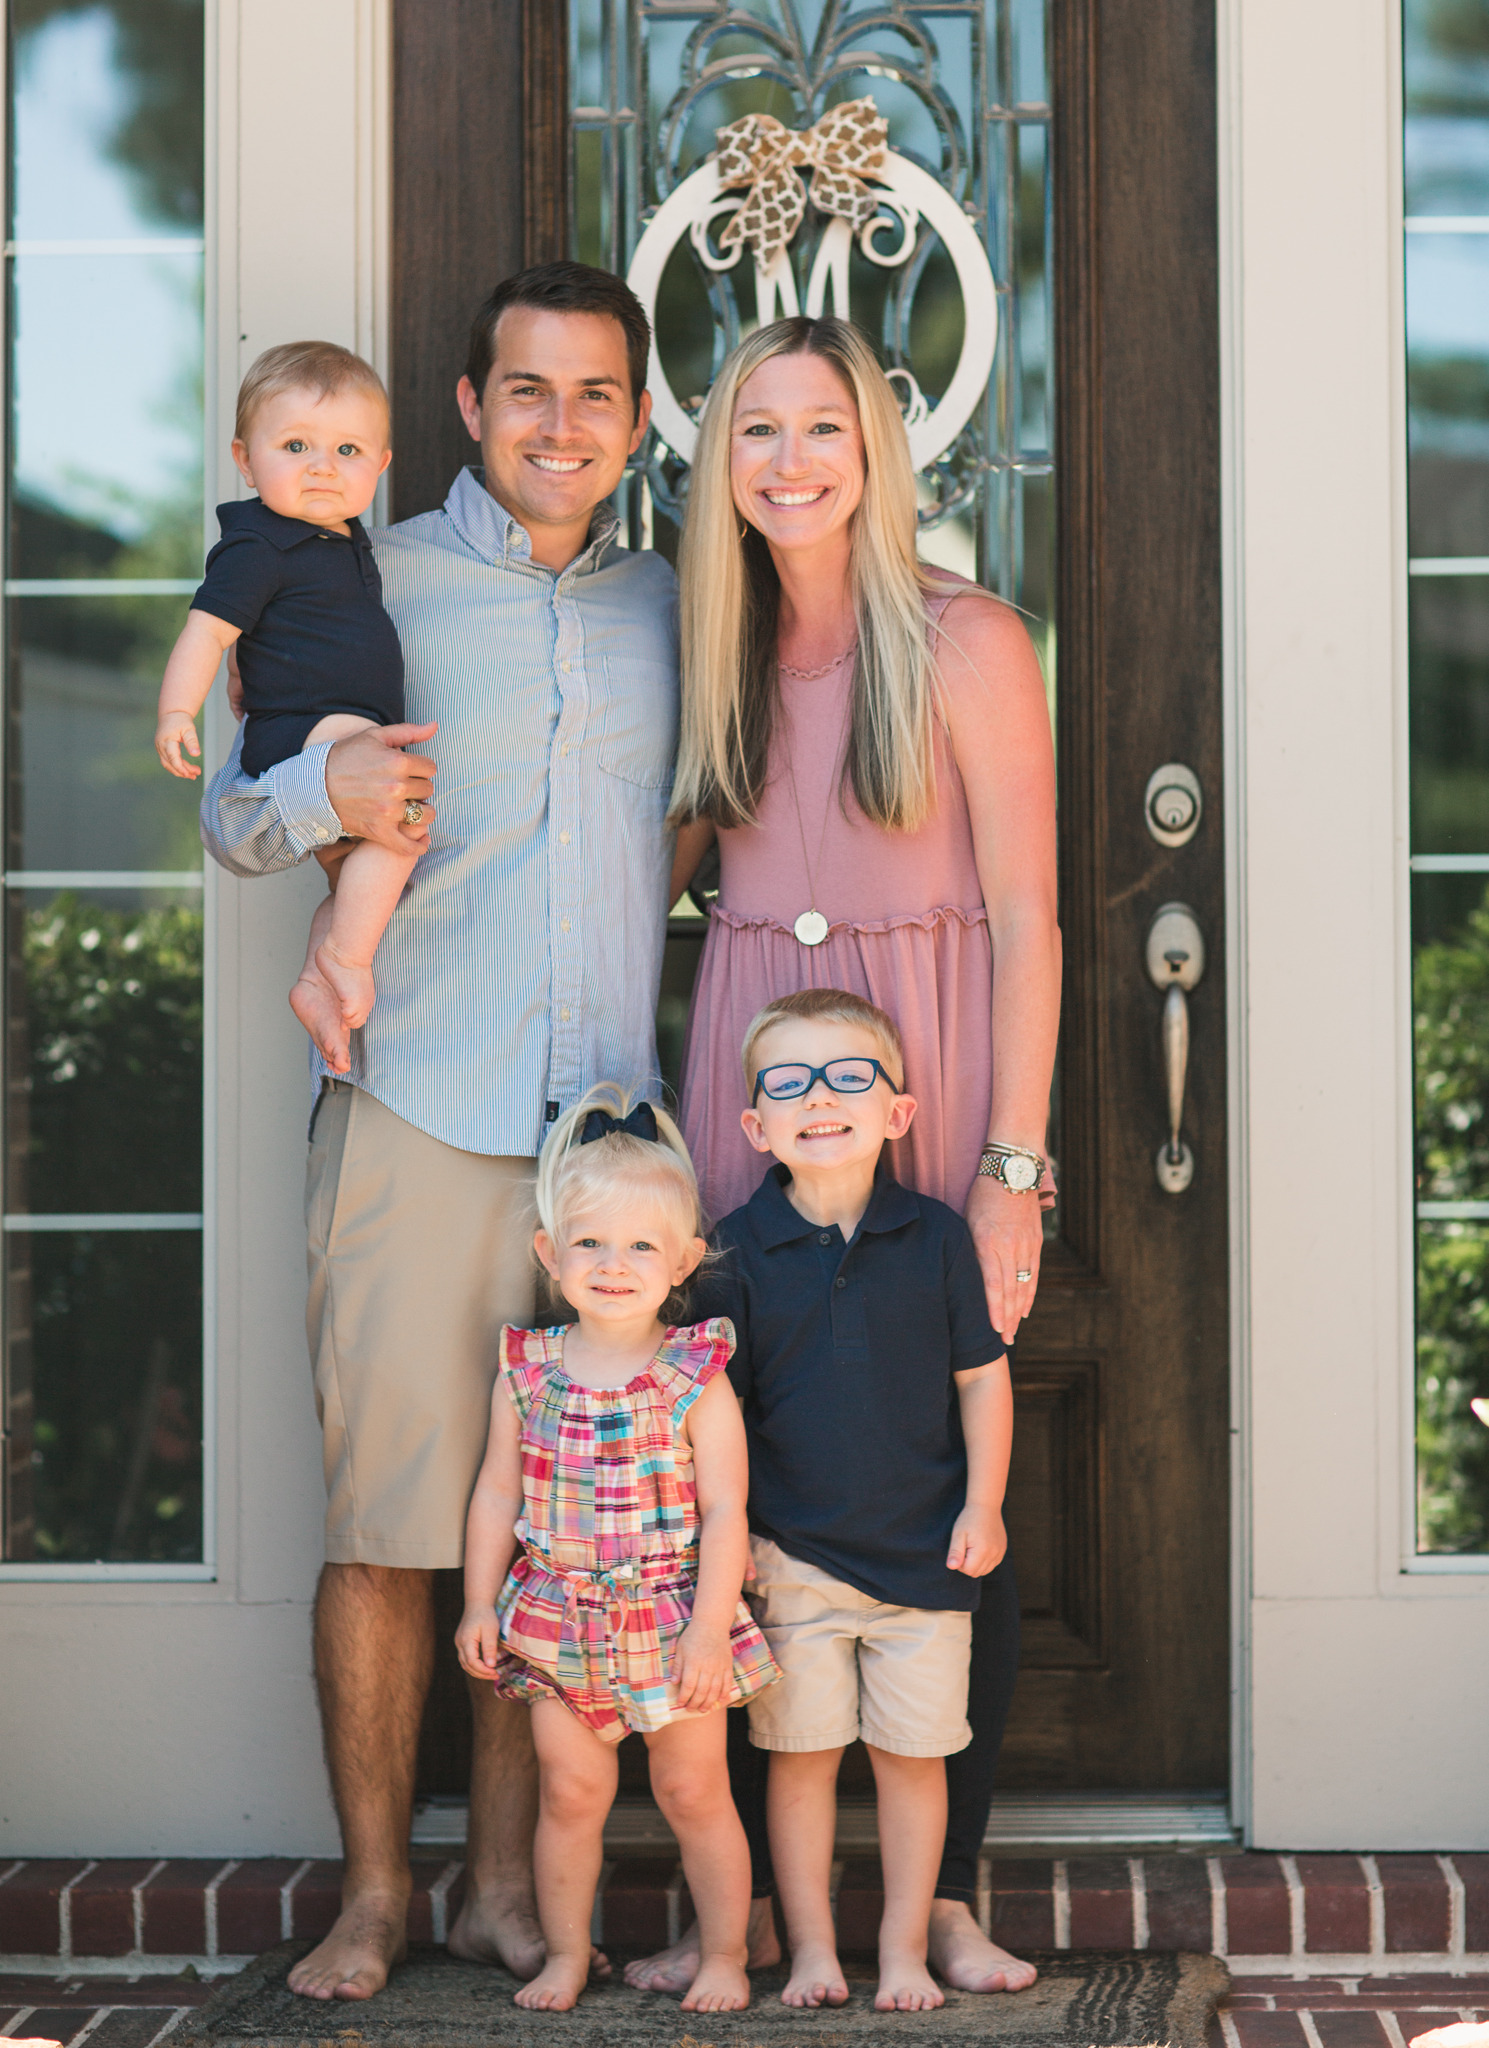 The Morgan family live in Cypress, Texas and attend Primrose School of Barker Cypress in the Coles Crossing area.